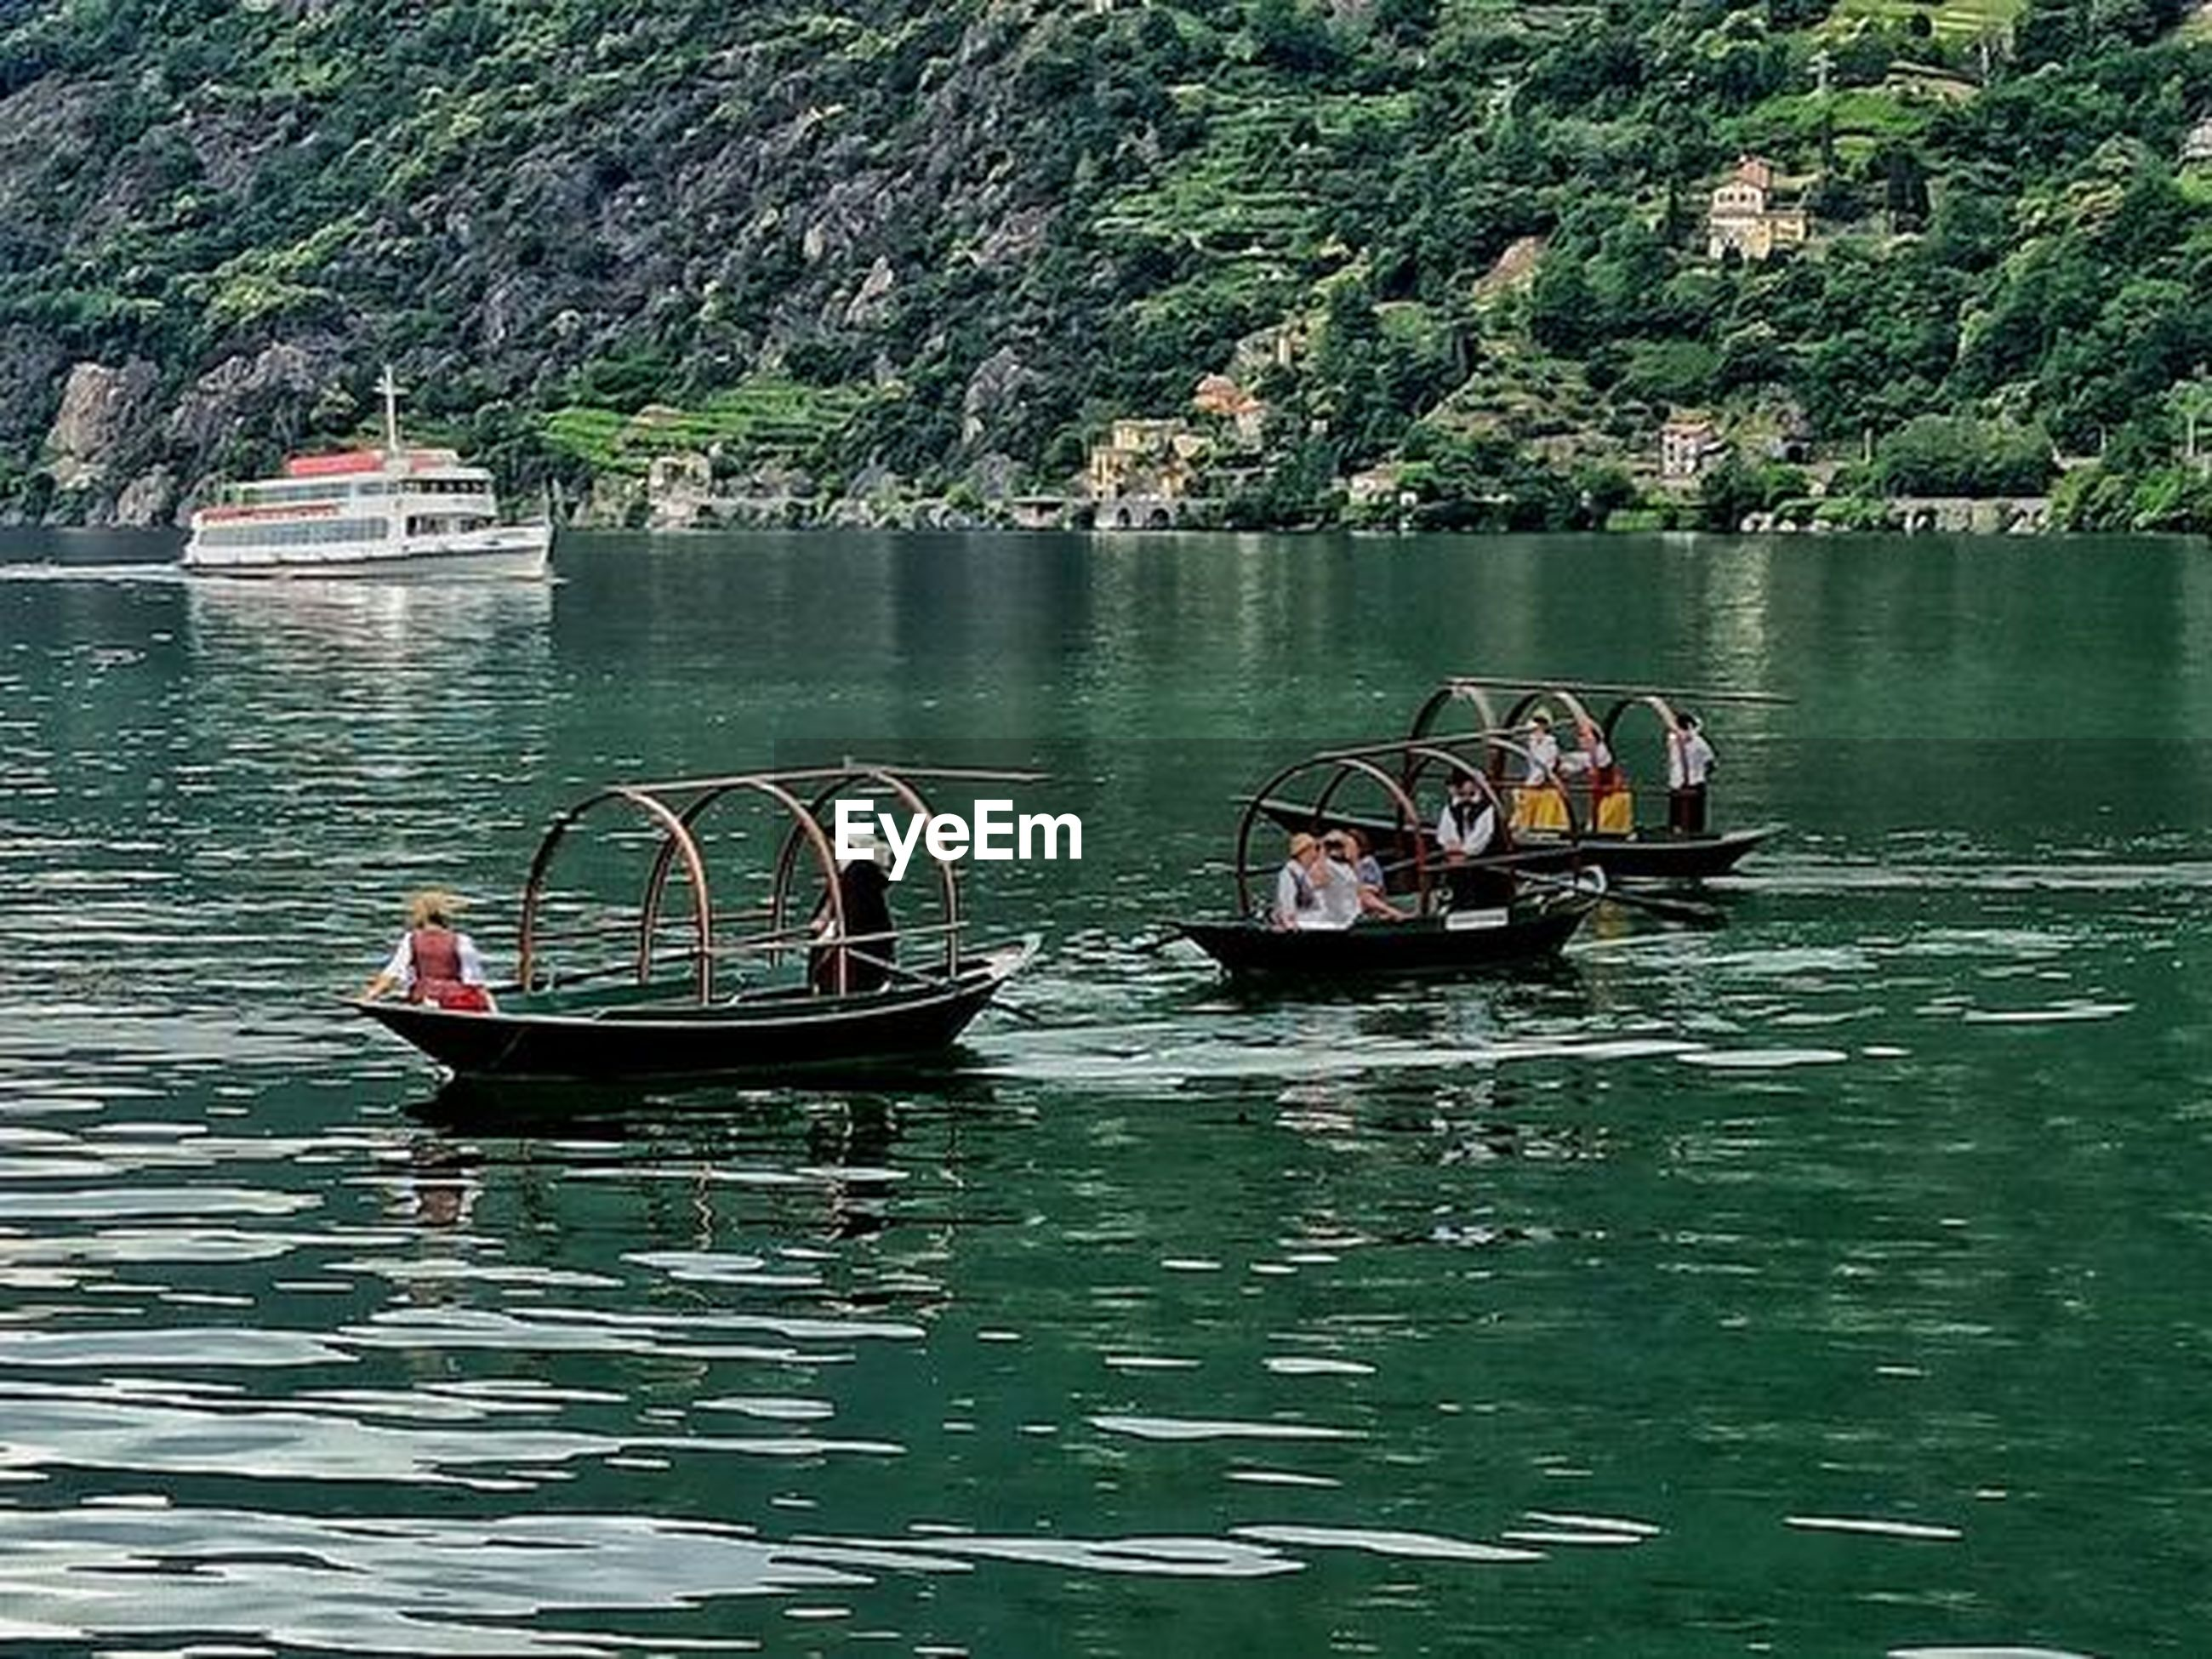 water, nautical vessel, transportation, mode of transportation, boating, boat, nature, vehicle, day, waterfront, travel, plant, tree, watercraft, lake, group of people, beauty in nature, outdoors, men, scenics - nature, tranquility, travel destinations, tourism, rippled, tranquil scene